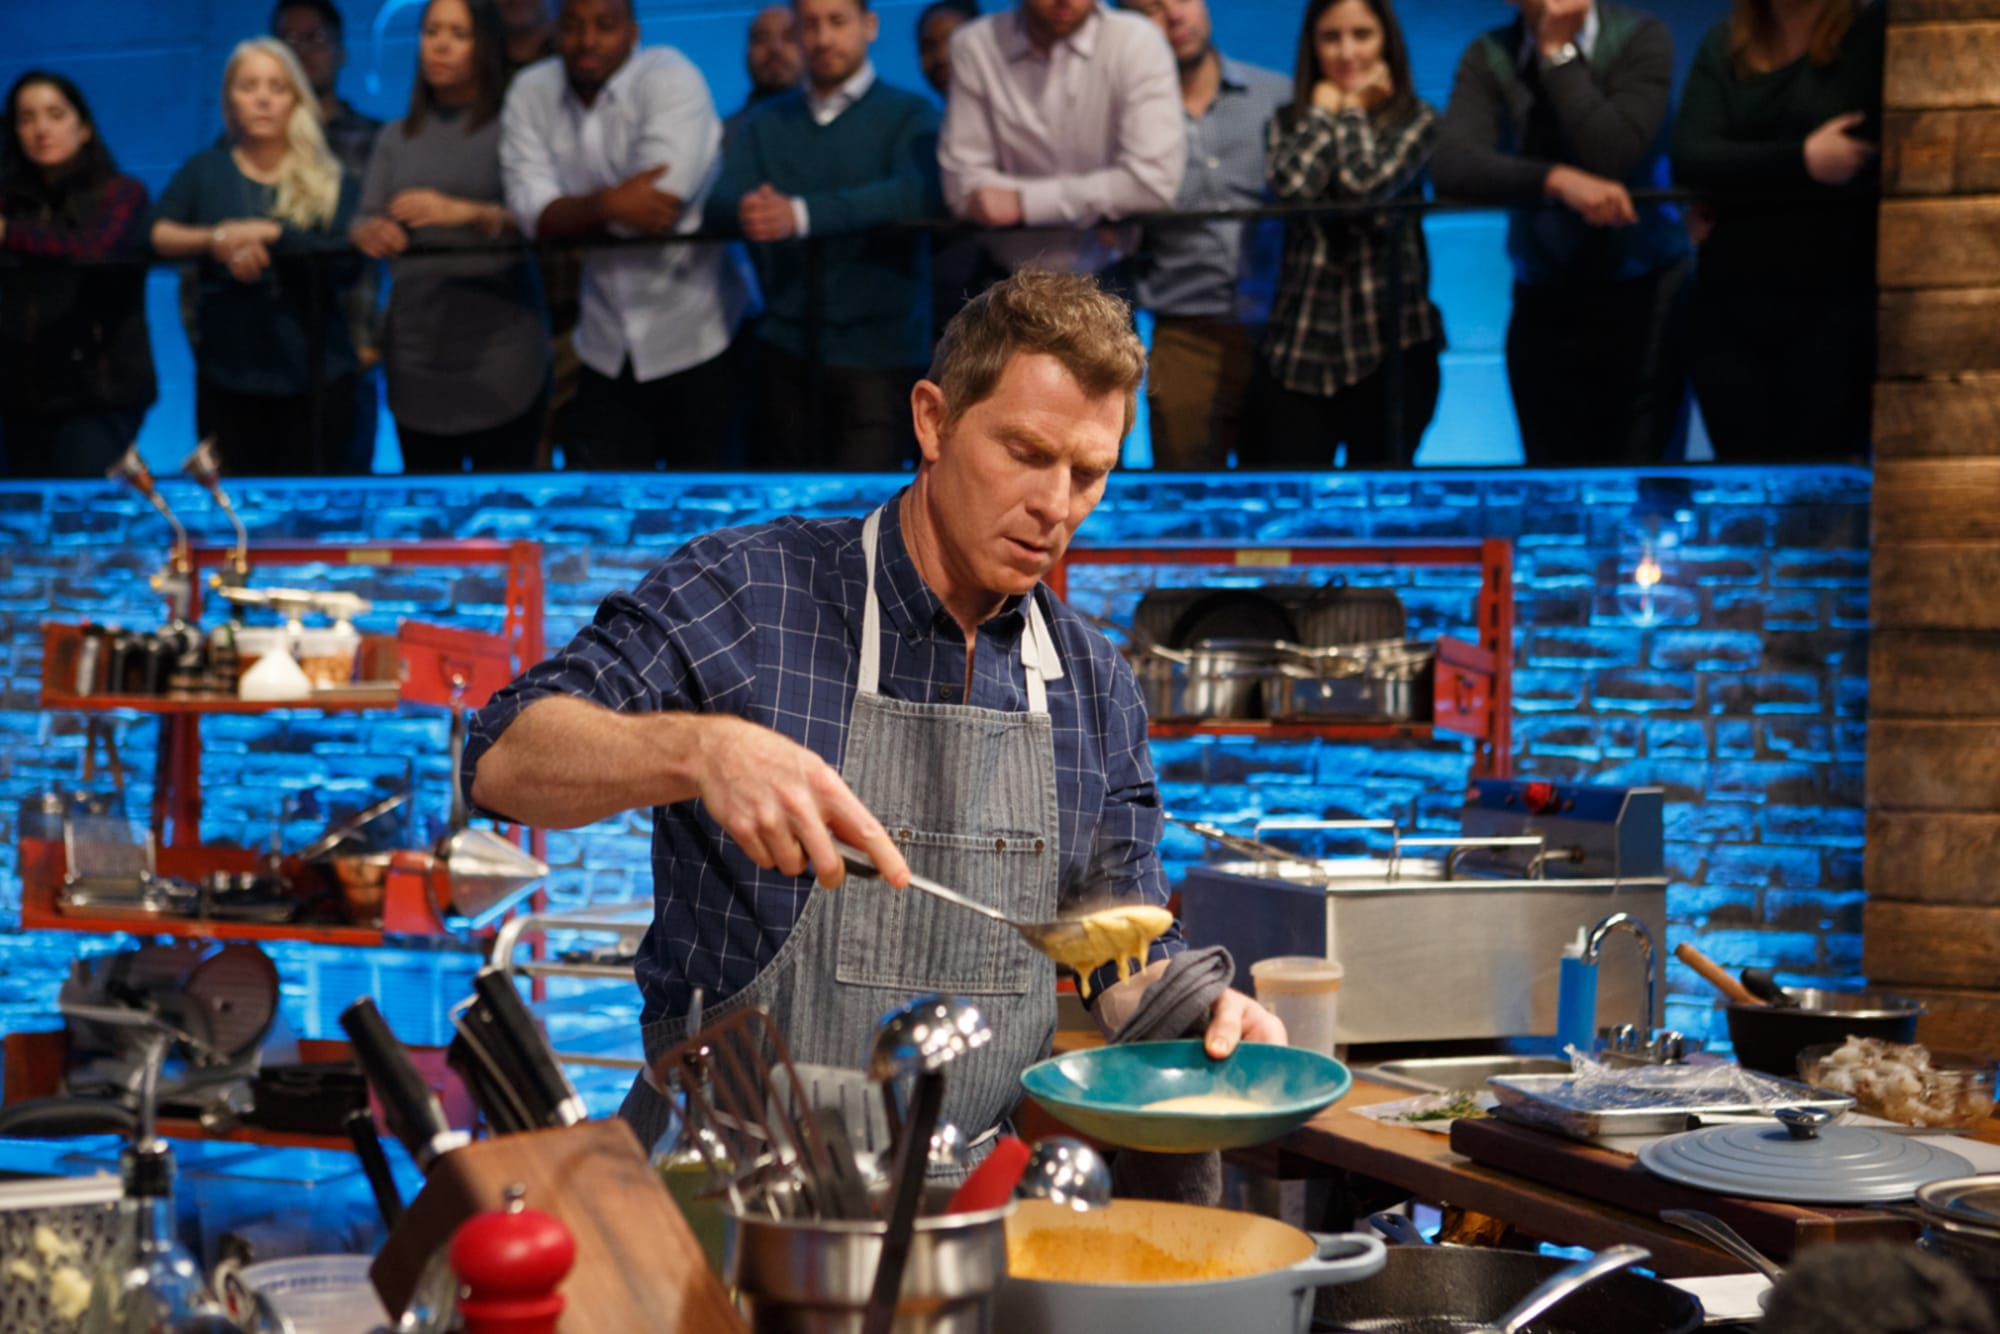 Flays who is daughter bobby Sophie Flay's